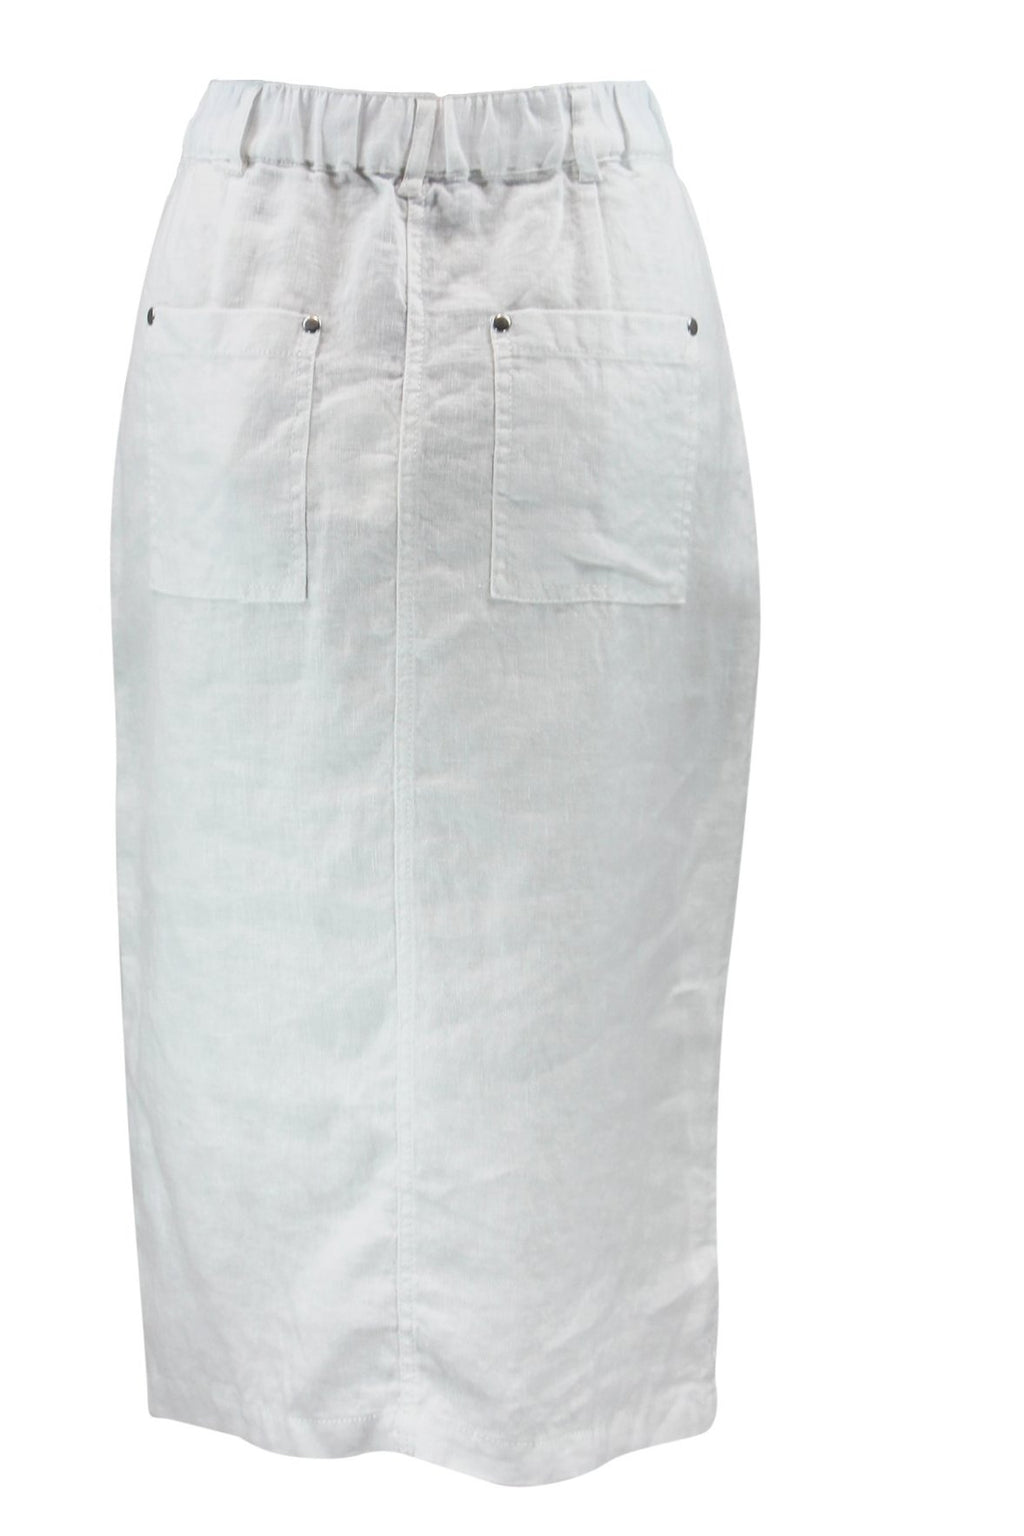 White Linen Zip Front Skirt - Style No:  435600